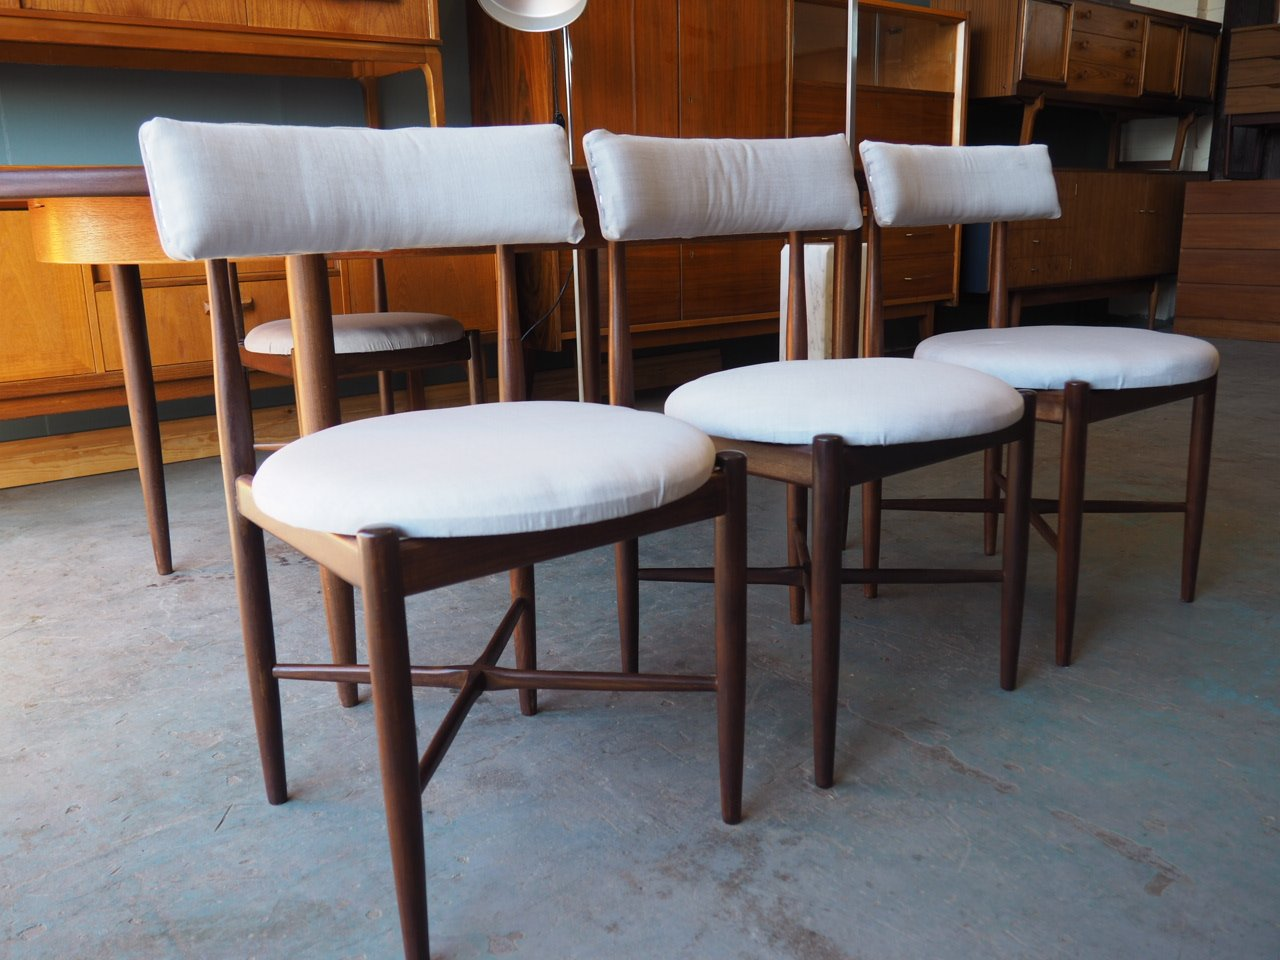 Vintage Fresco Range Dining Table Chairs From GPlan For Sale At - Coffee table with 4 chairs